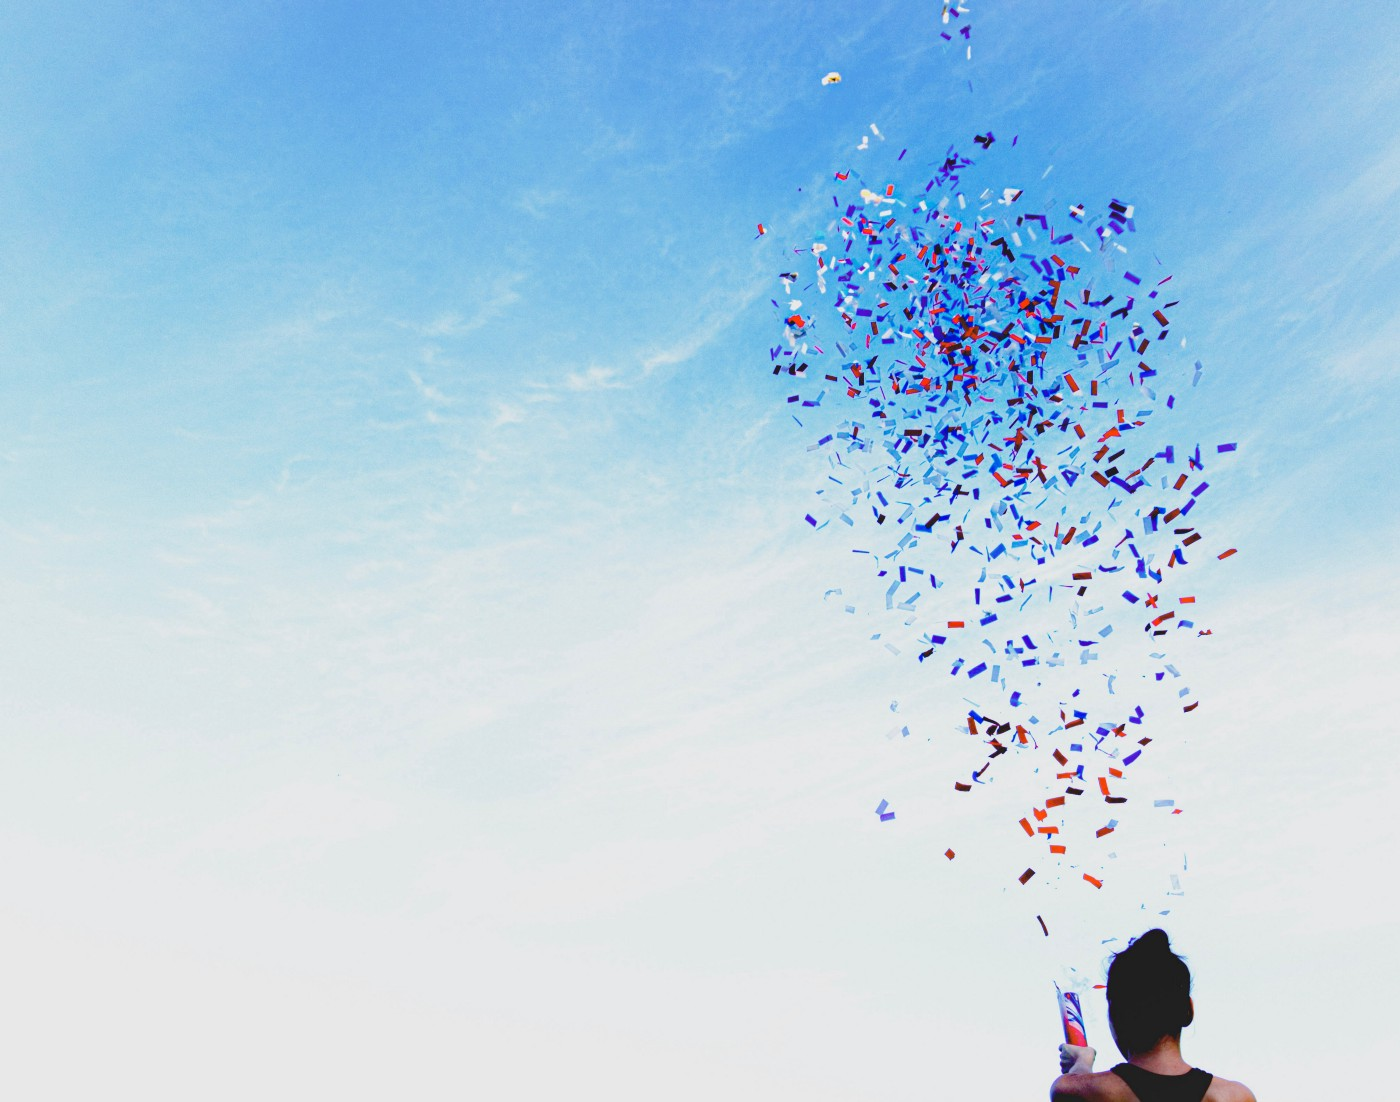 person shooting colorful confetti up against a blue sky